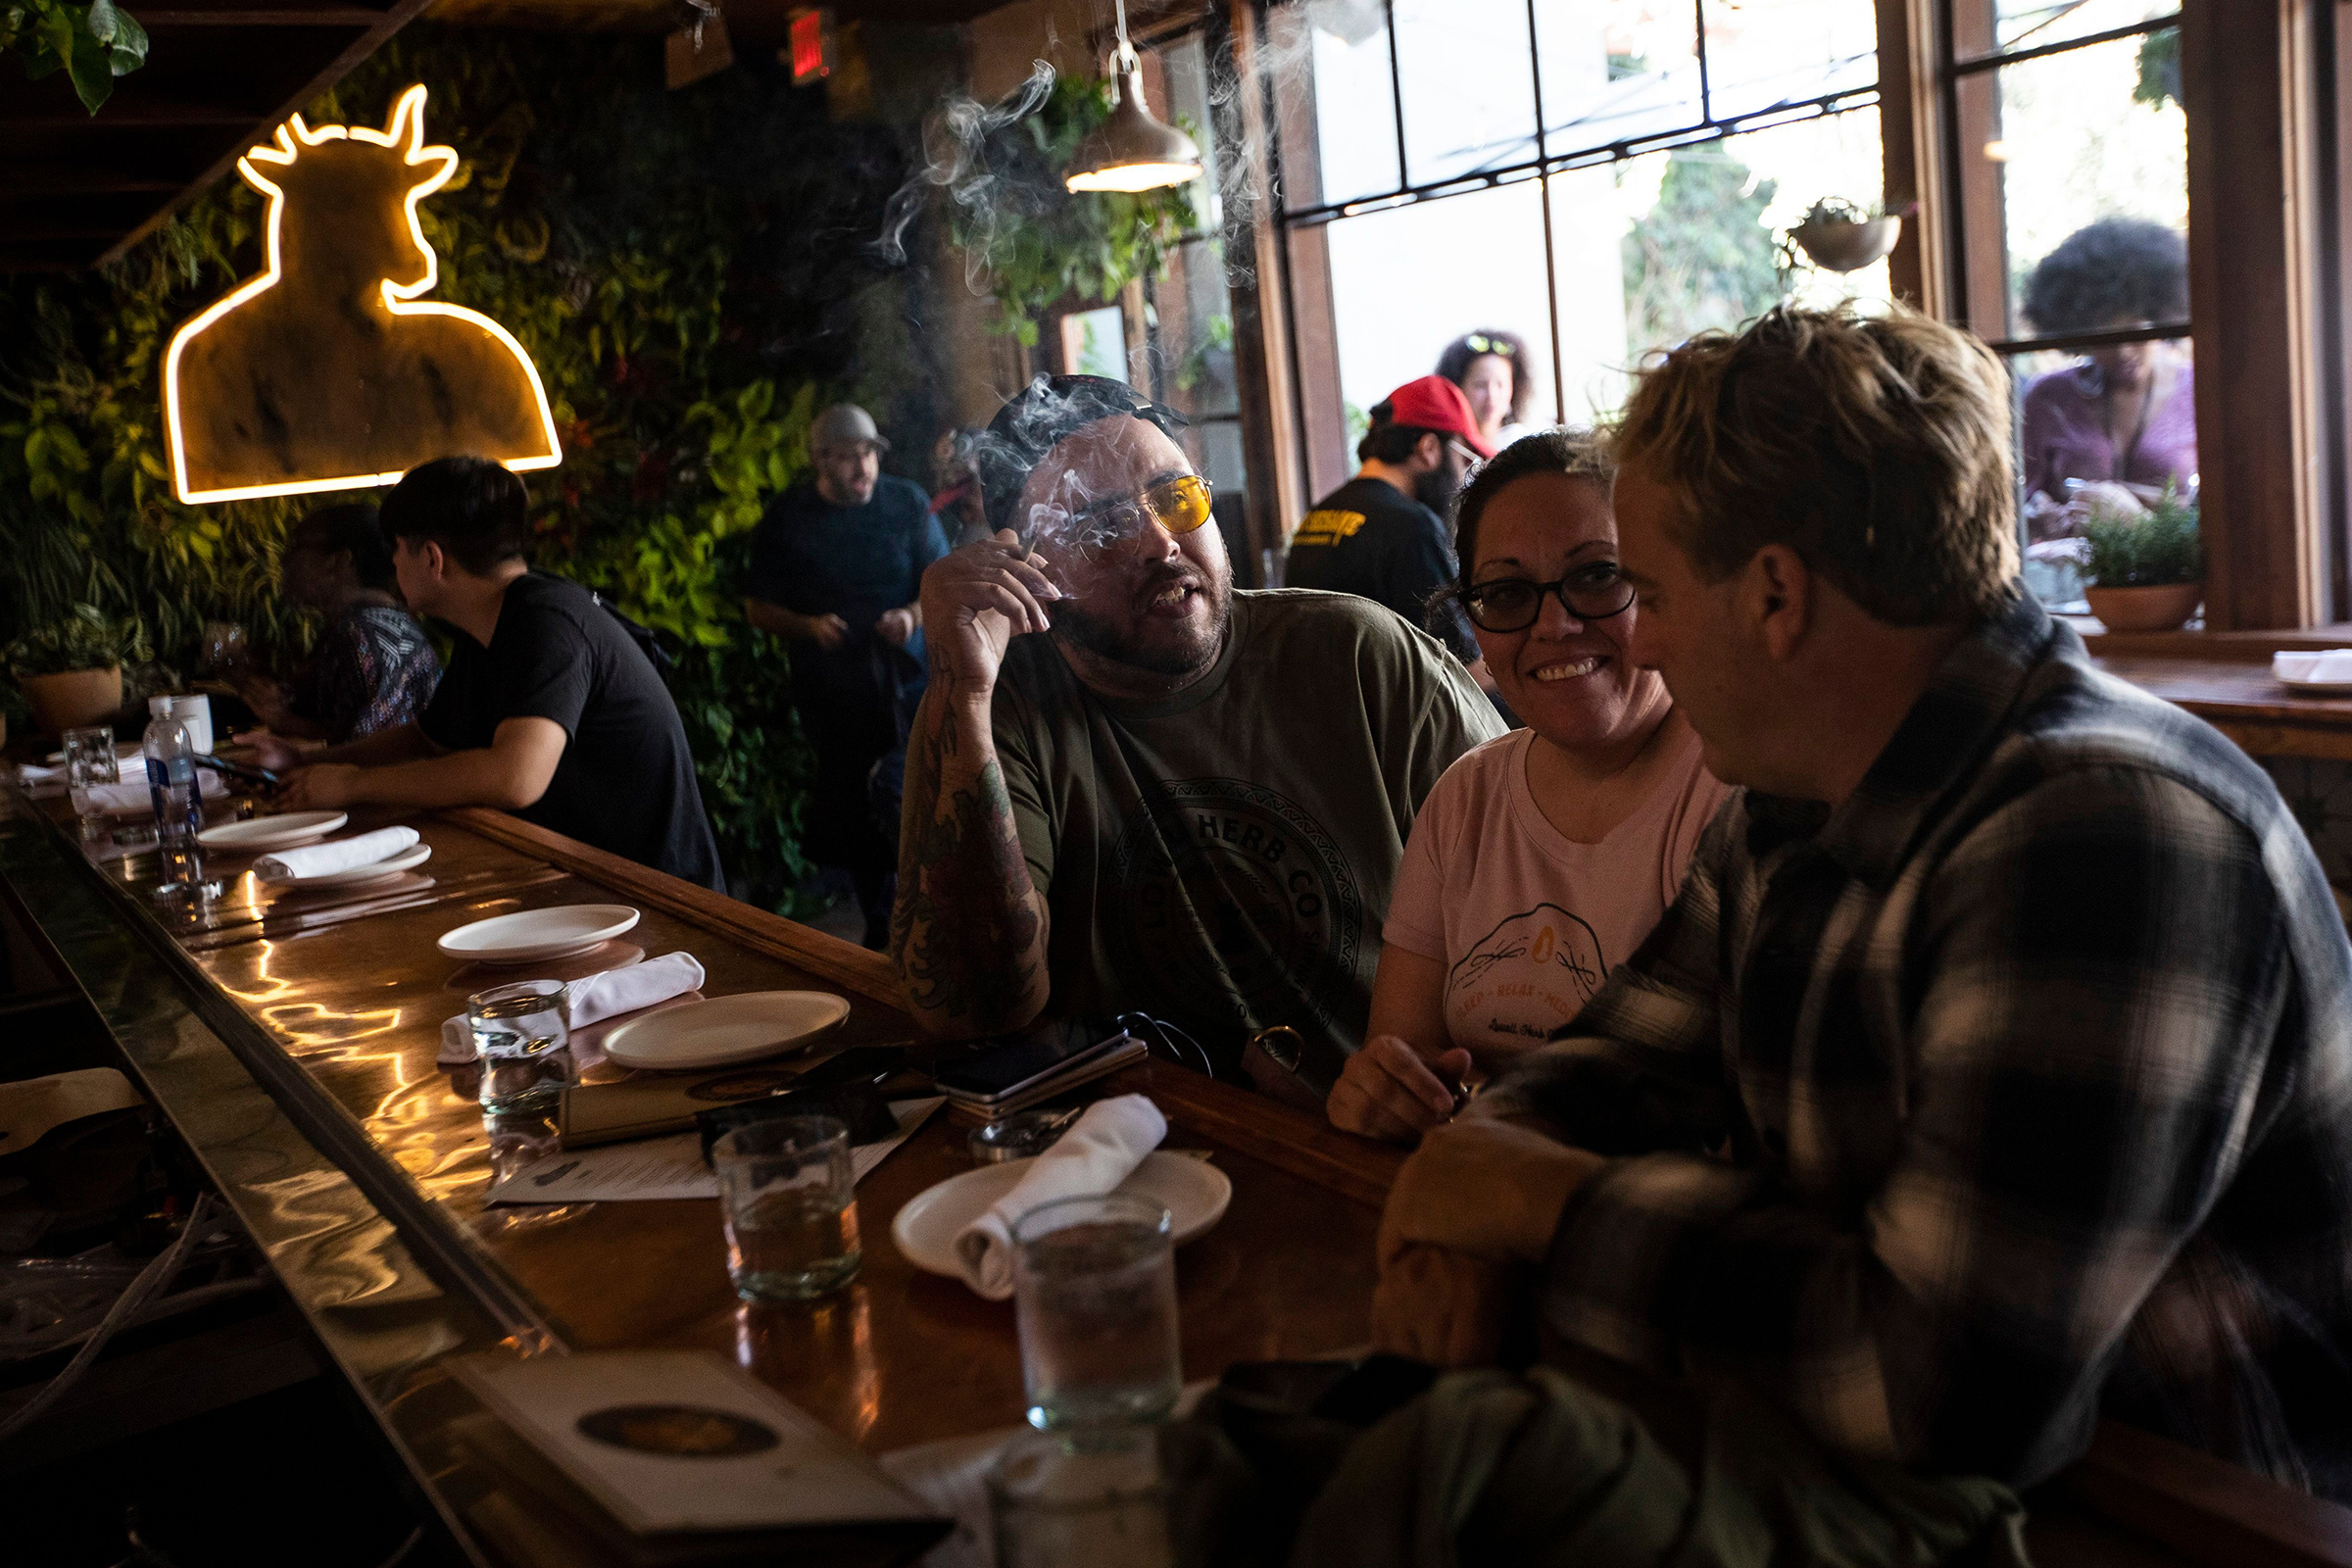 On the Scene at America's First Public Cannabis Cafe